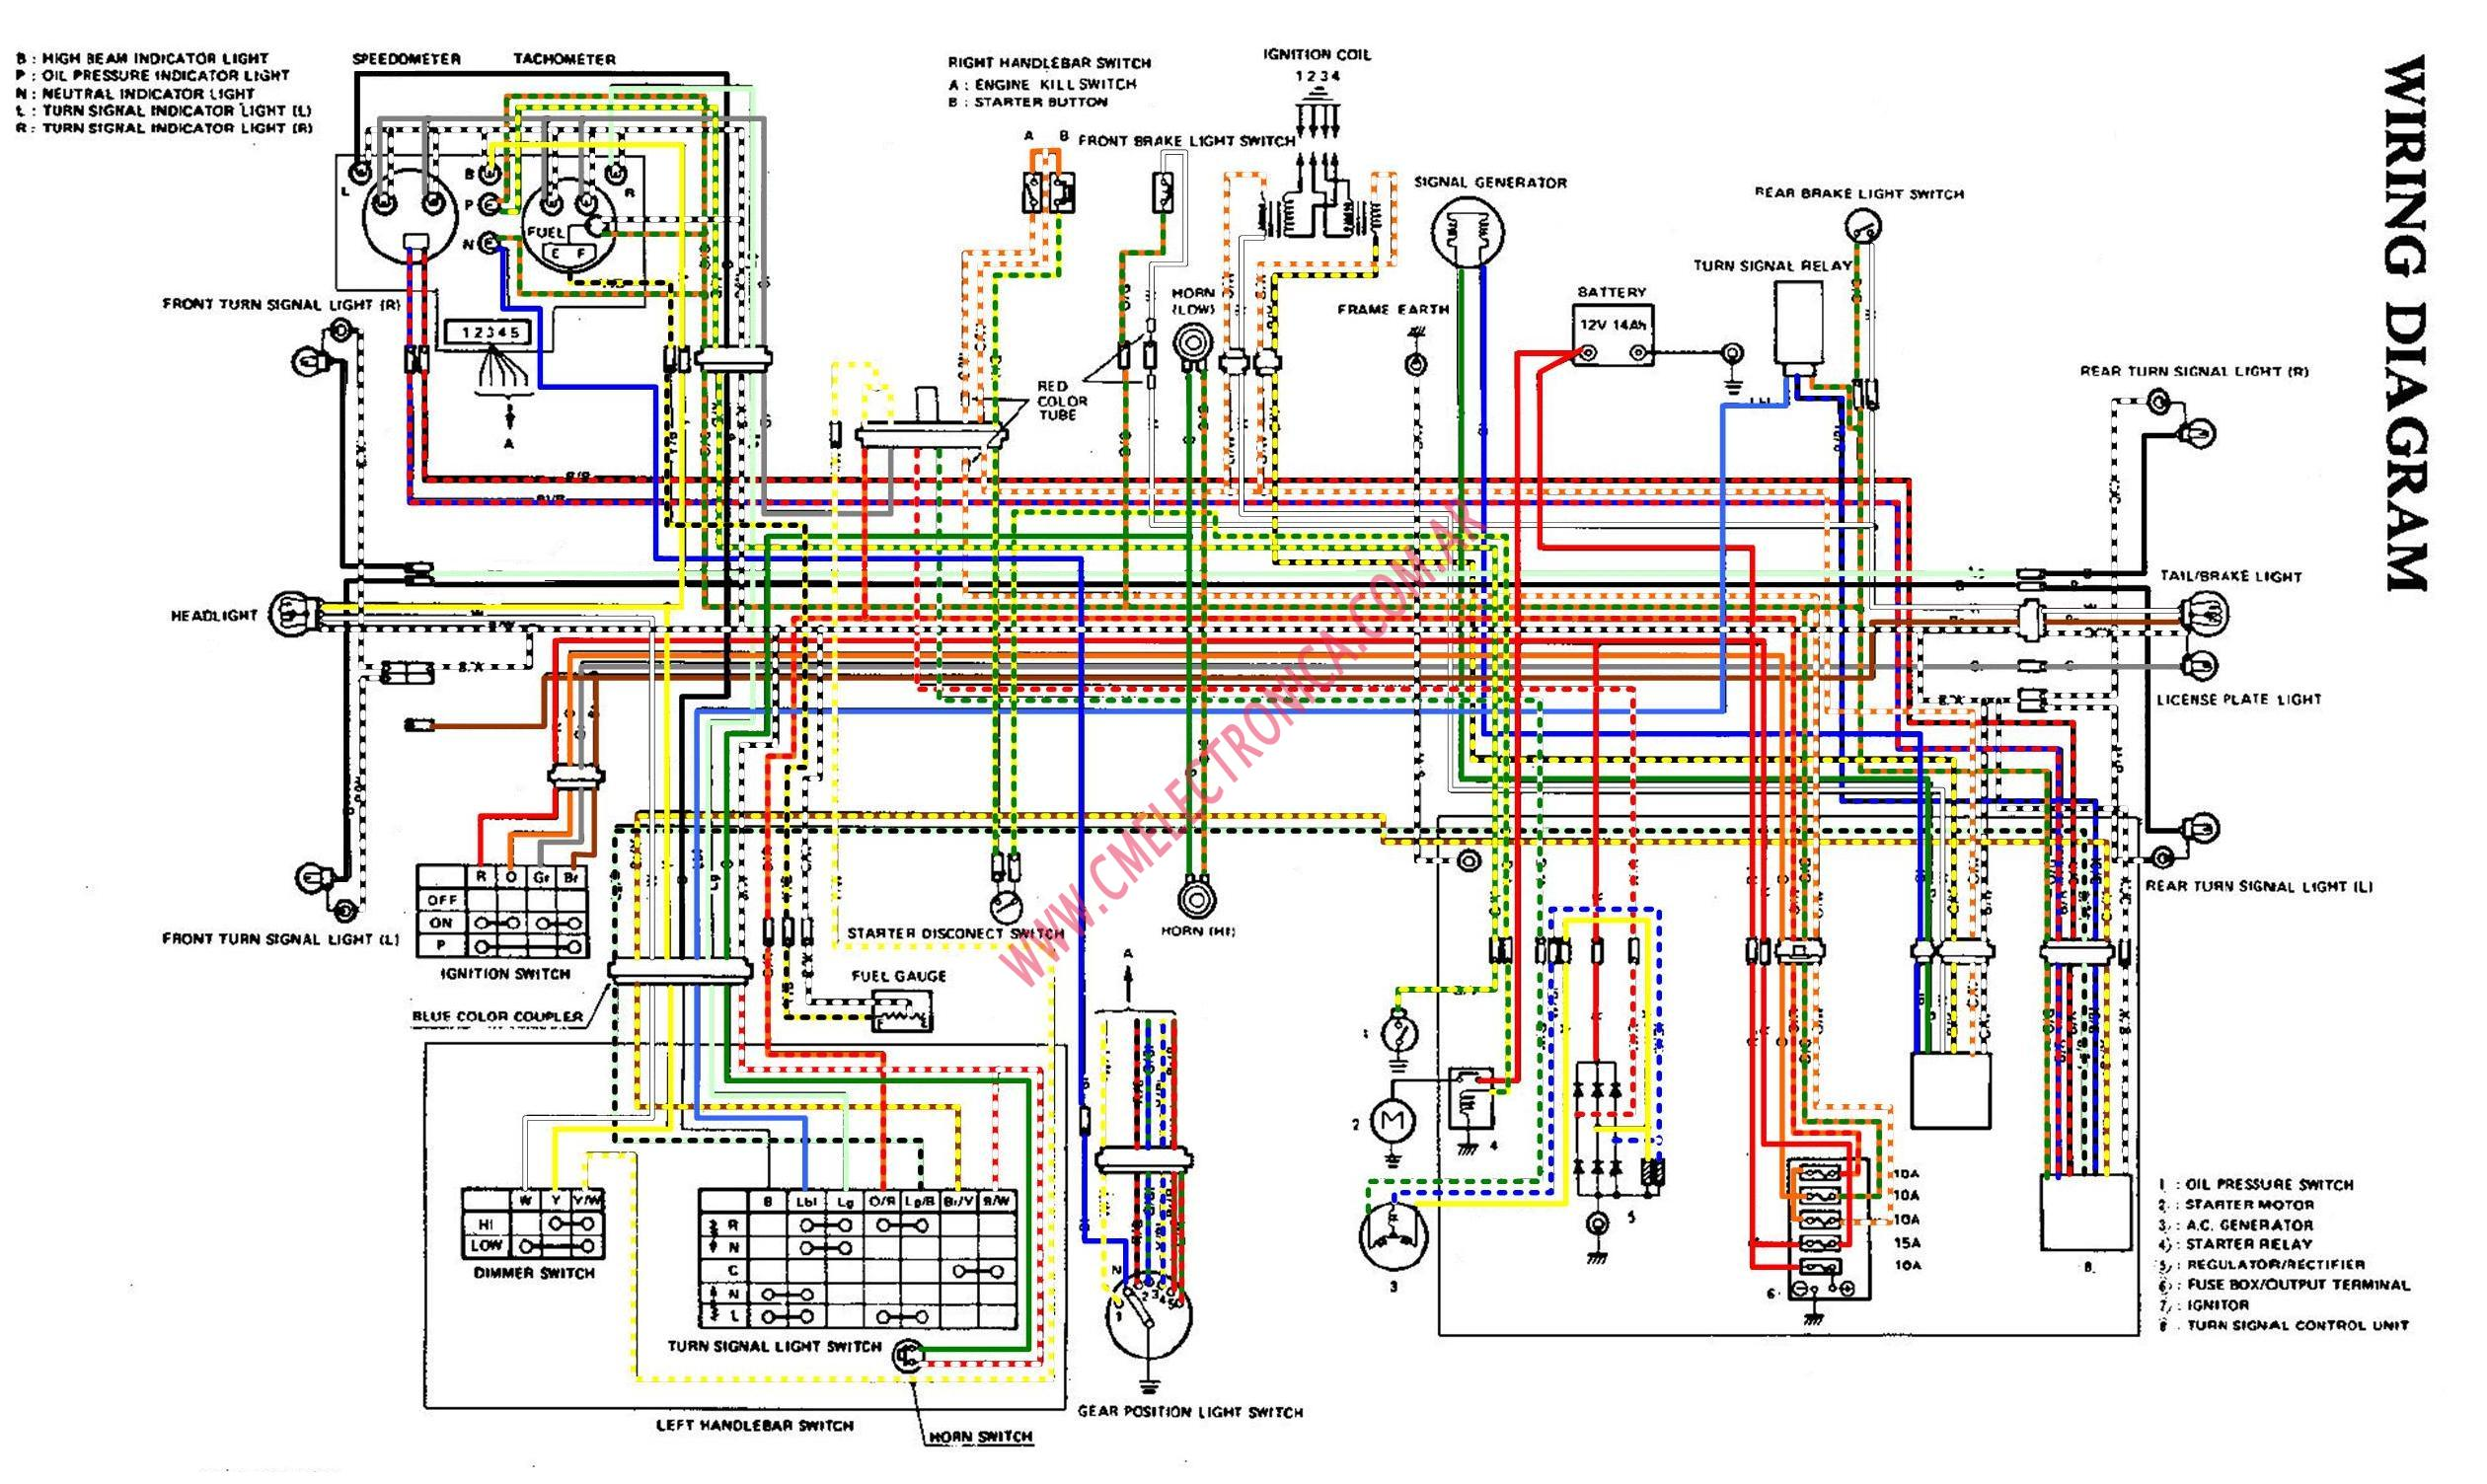 suzuki gs1000 y2k bike wiring diagrams suzuki gsx r motorcycle forums gixxer 1980 suzuki gs850 wiring diagram at crackthecode.co